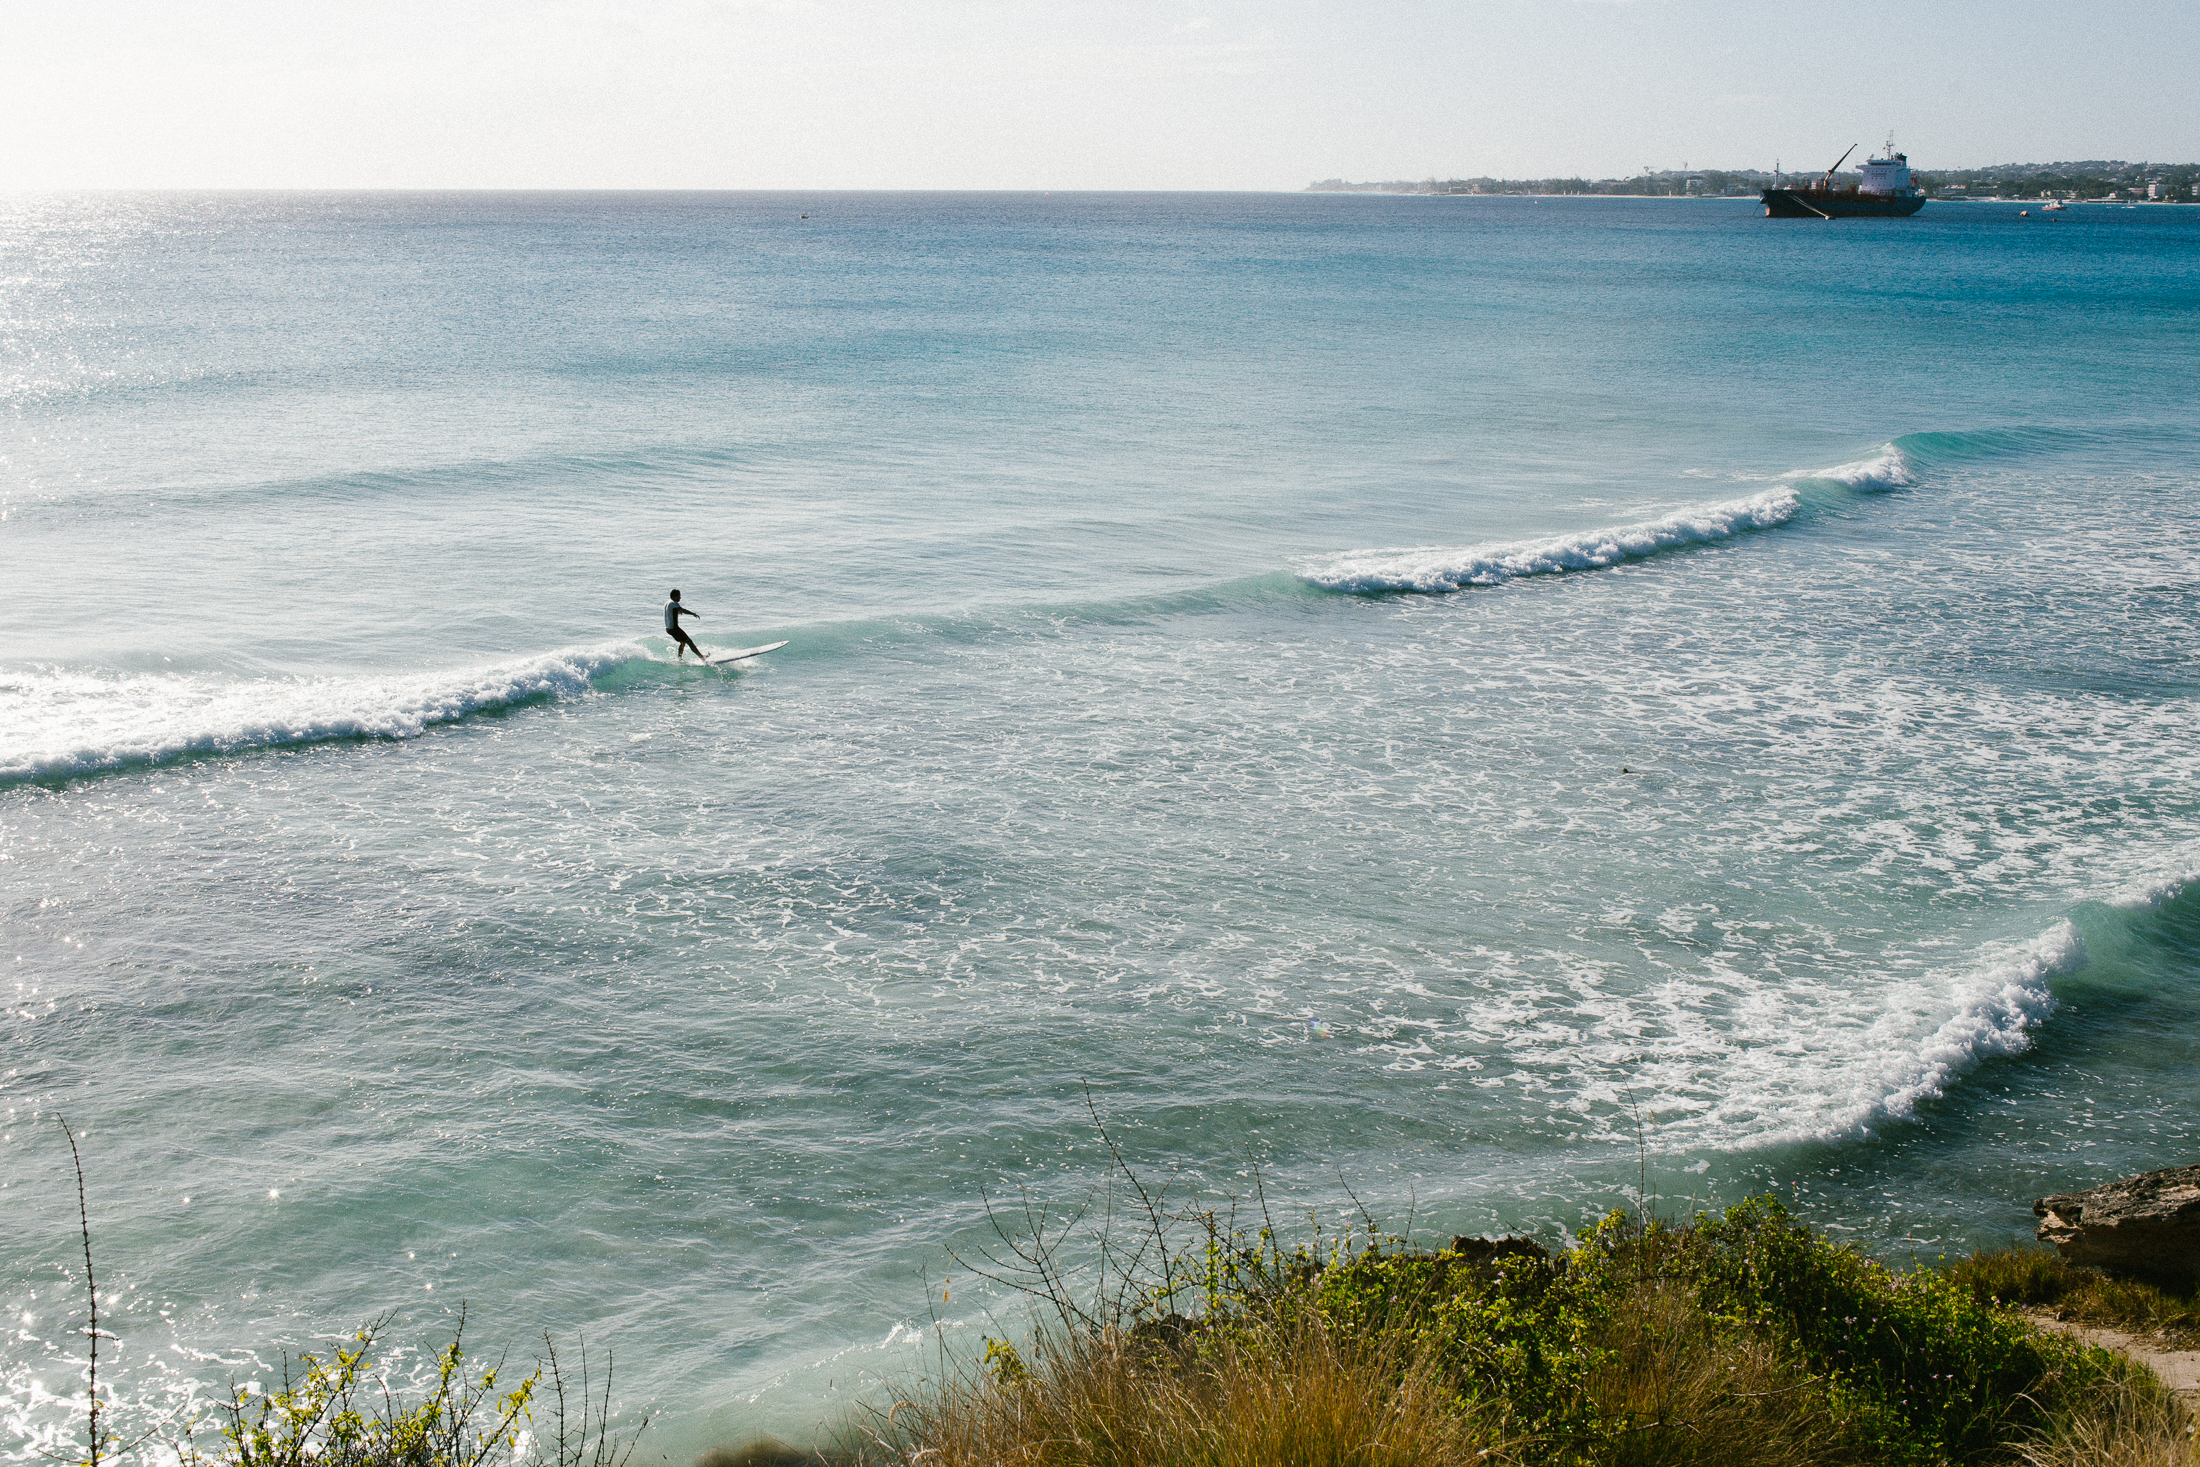 A birthday surf session at Freights Bay